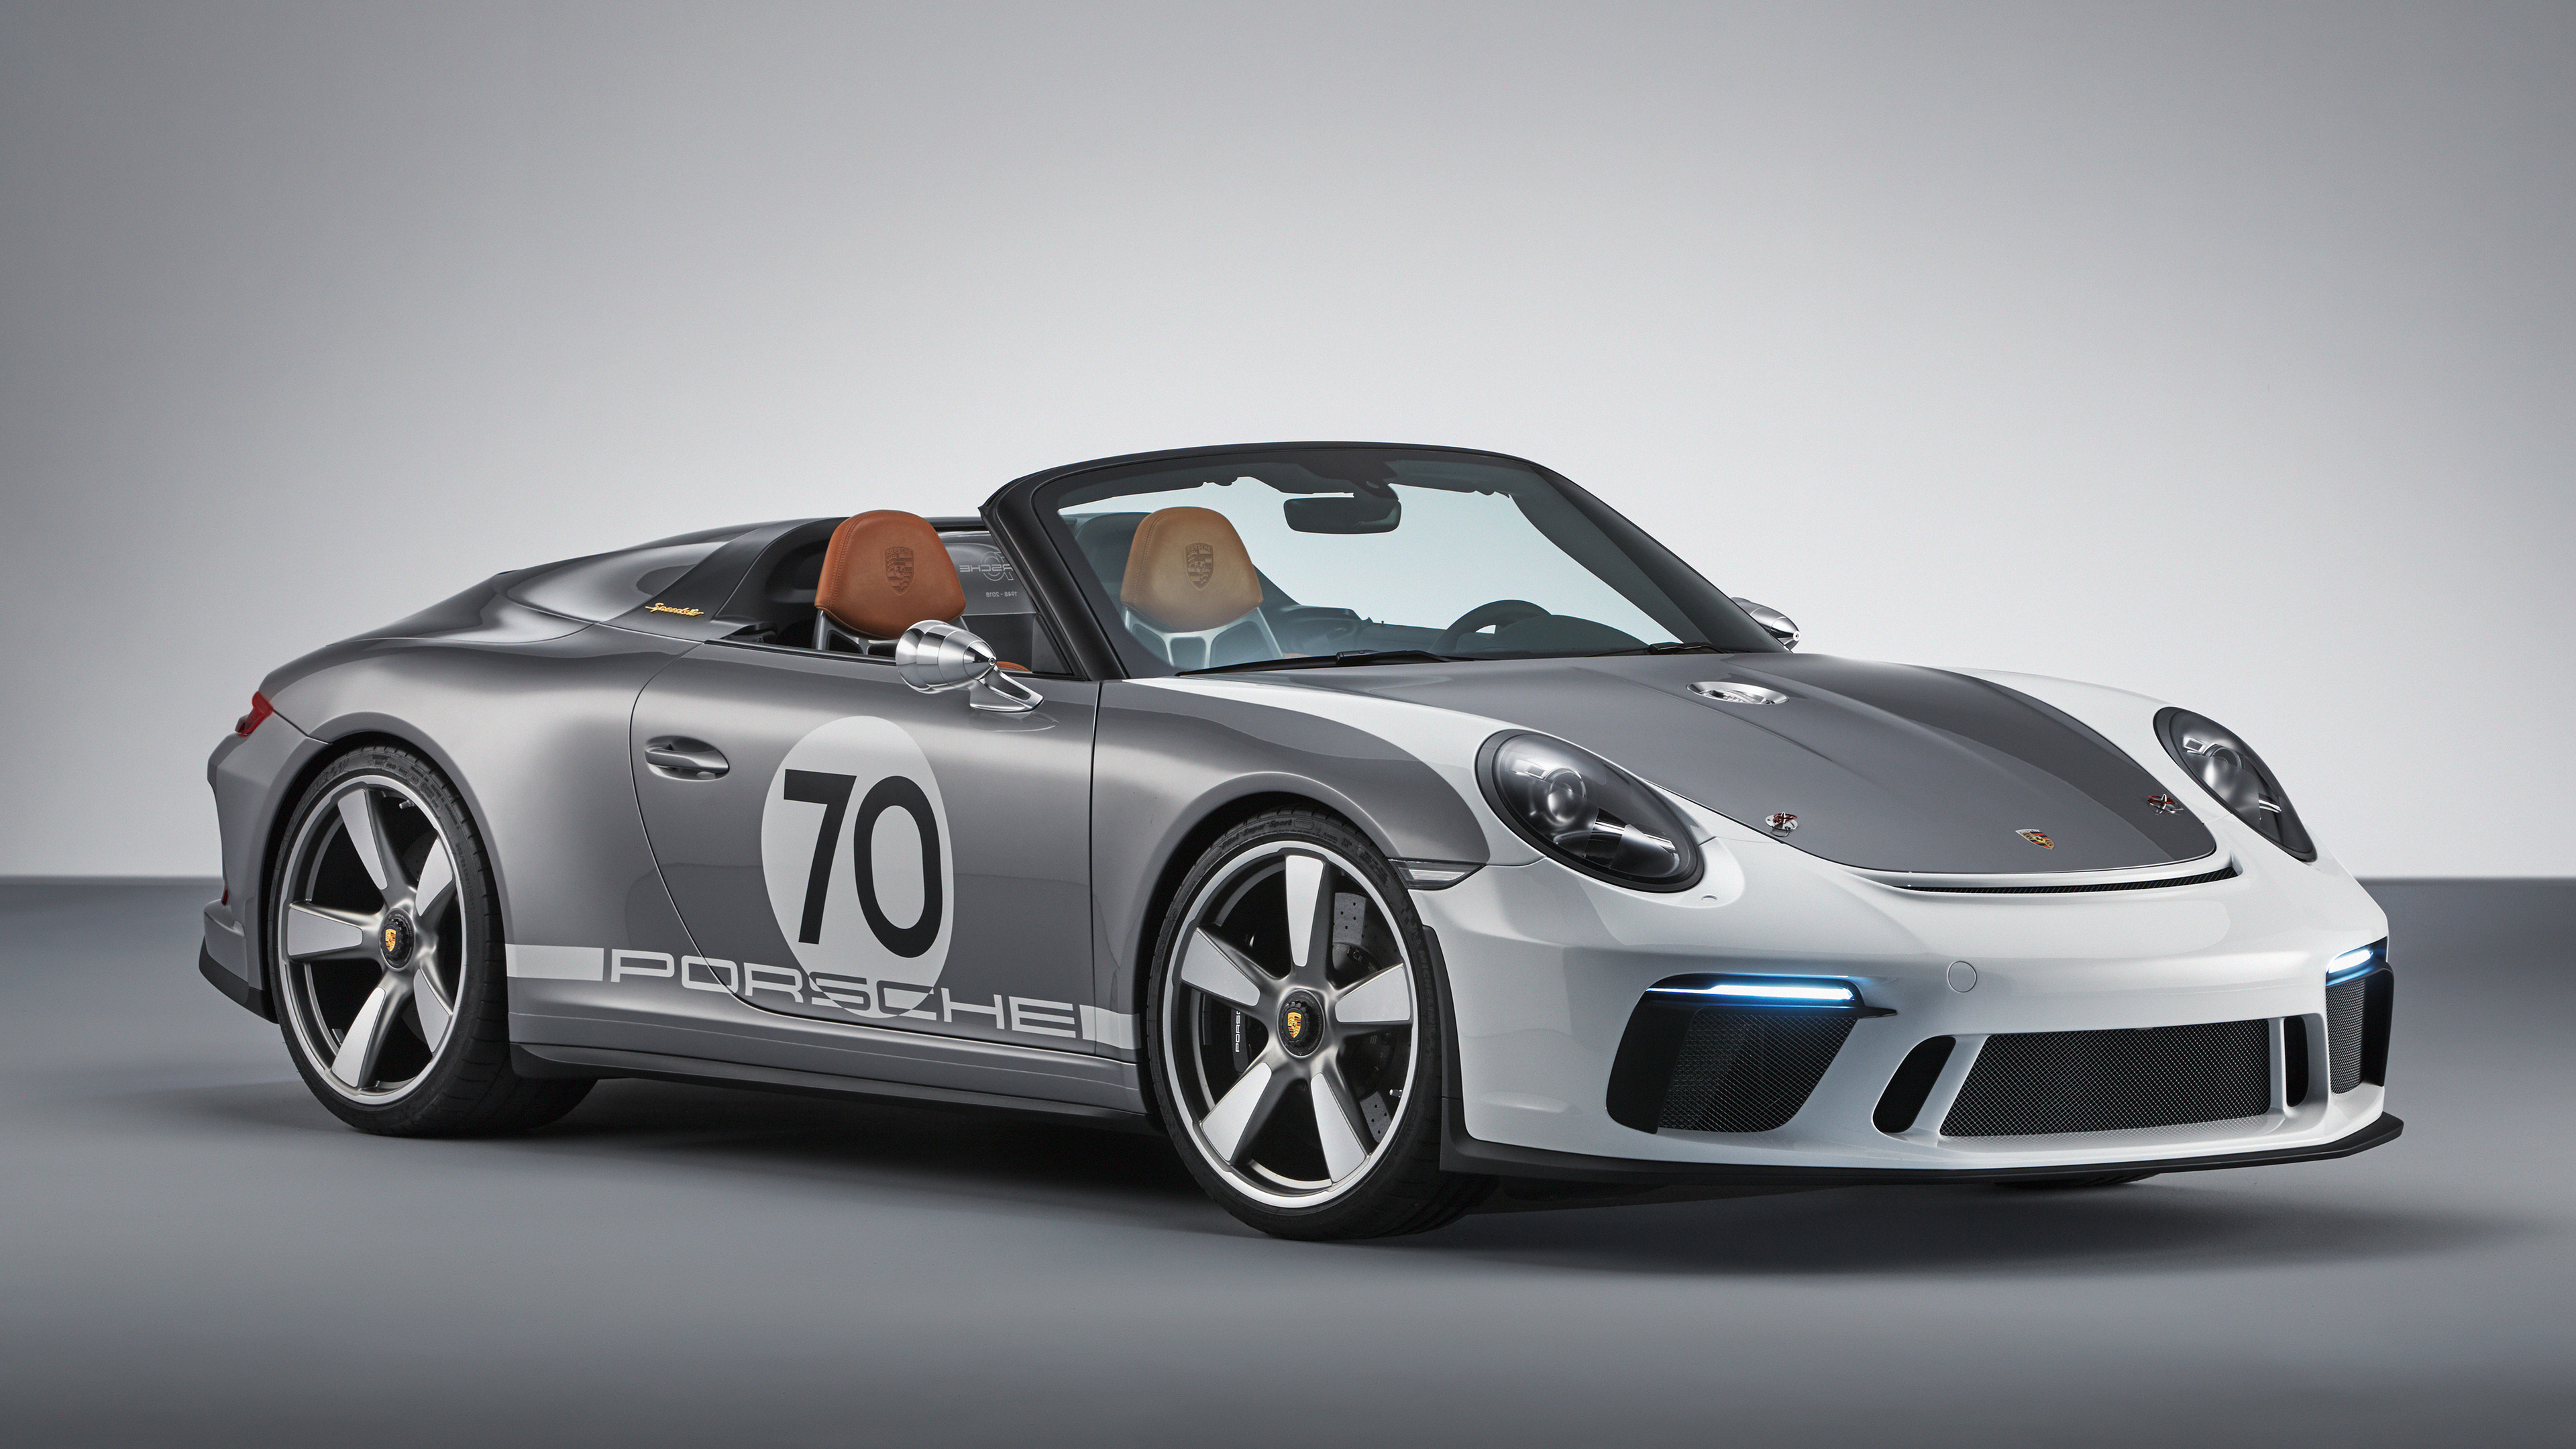 porsche 911 speedster concept 2018 1539111696 - Porsche 911 Speedster Concept 2018 - porsche wallpapers, porsche 911 wallpapers, hd-wallpapers, hd wallpapers2018 cars wallpapers, cars wallpapers, 4k-wallpapers